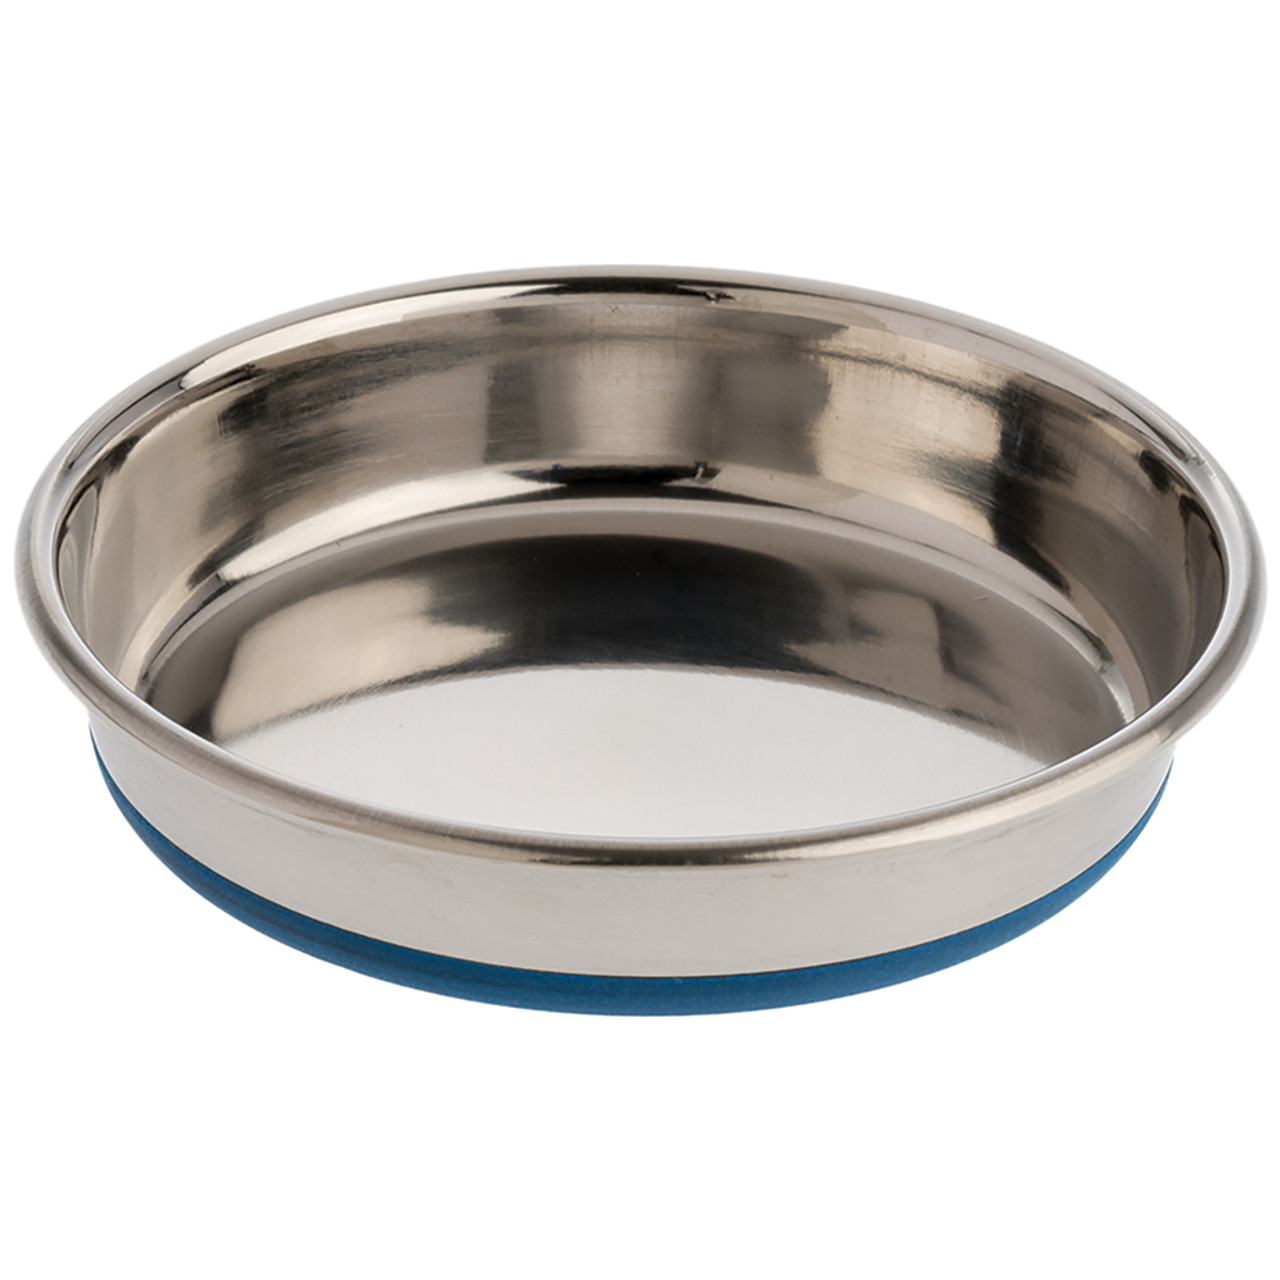 OurPets Durapet Stainless Steel Cat Bowl - Front